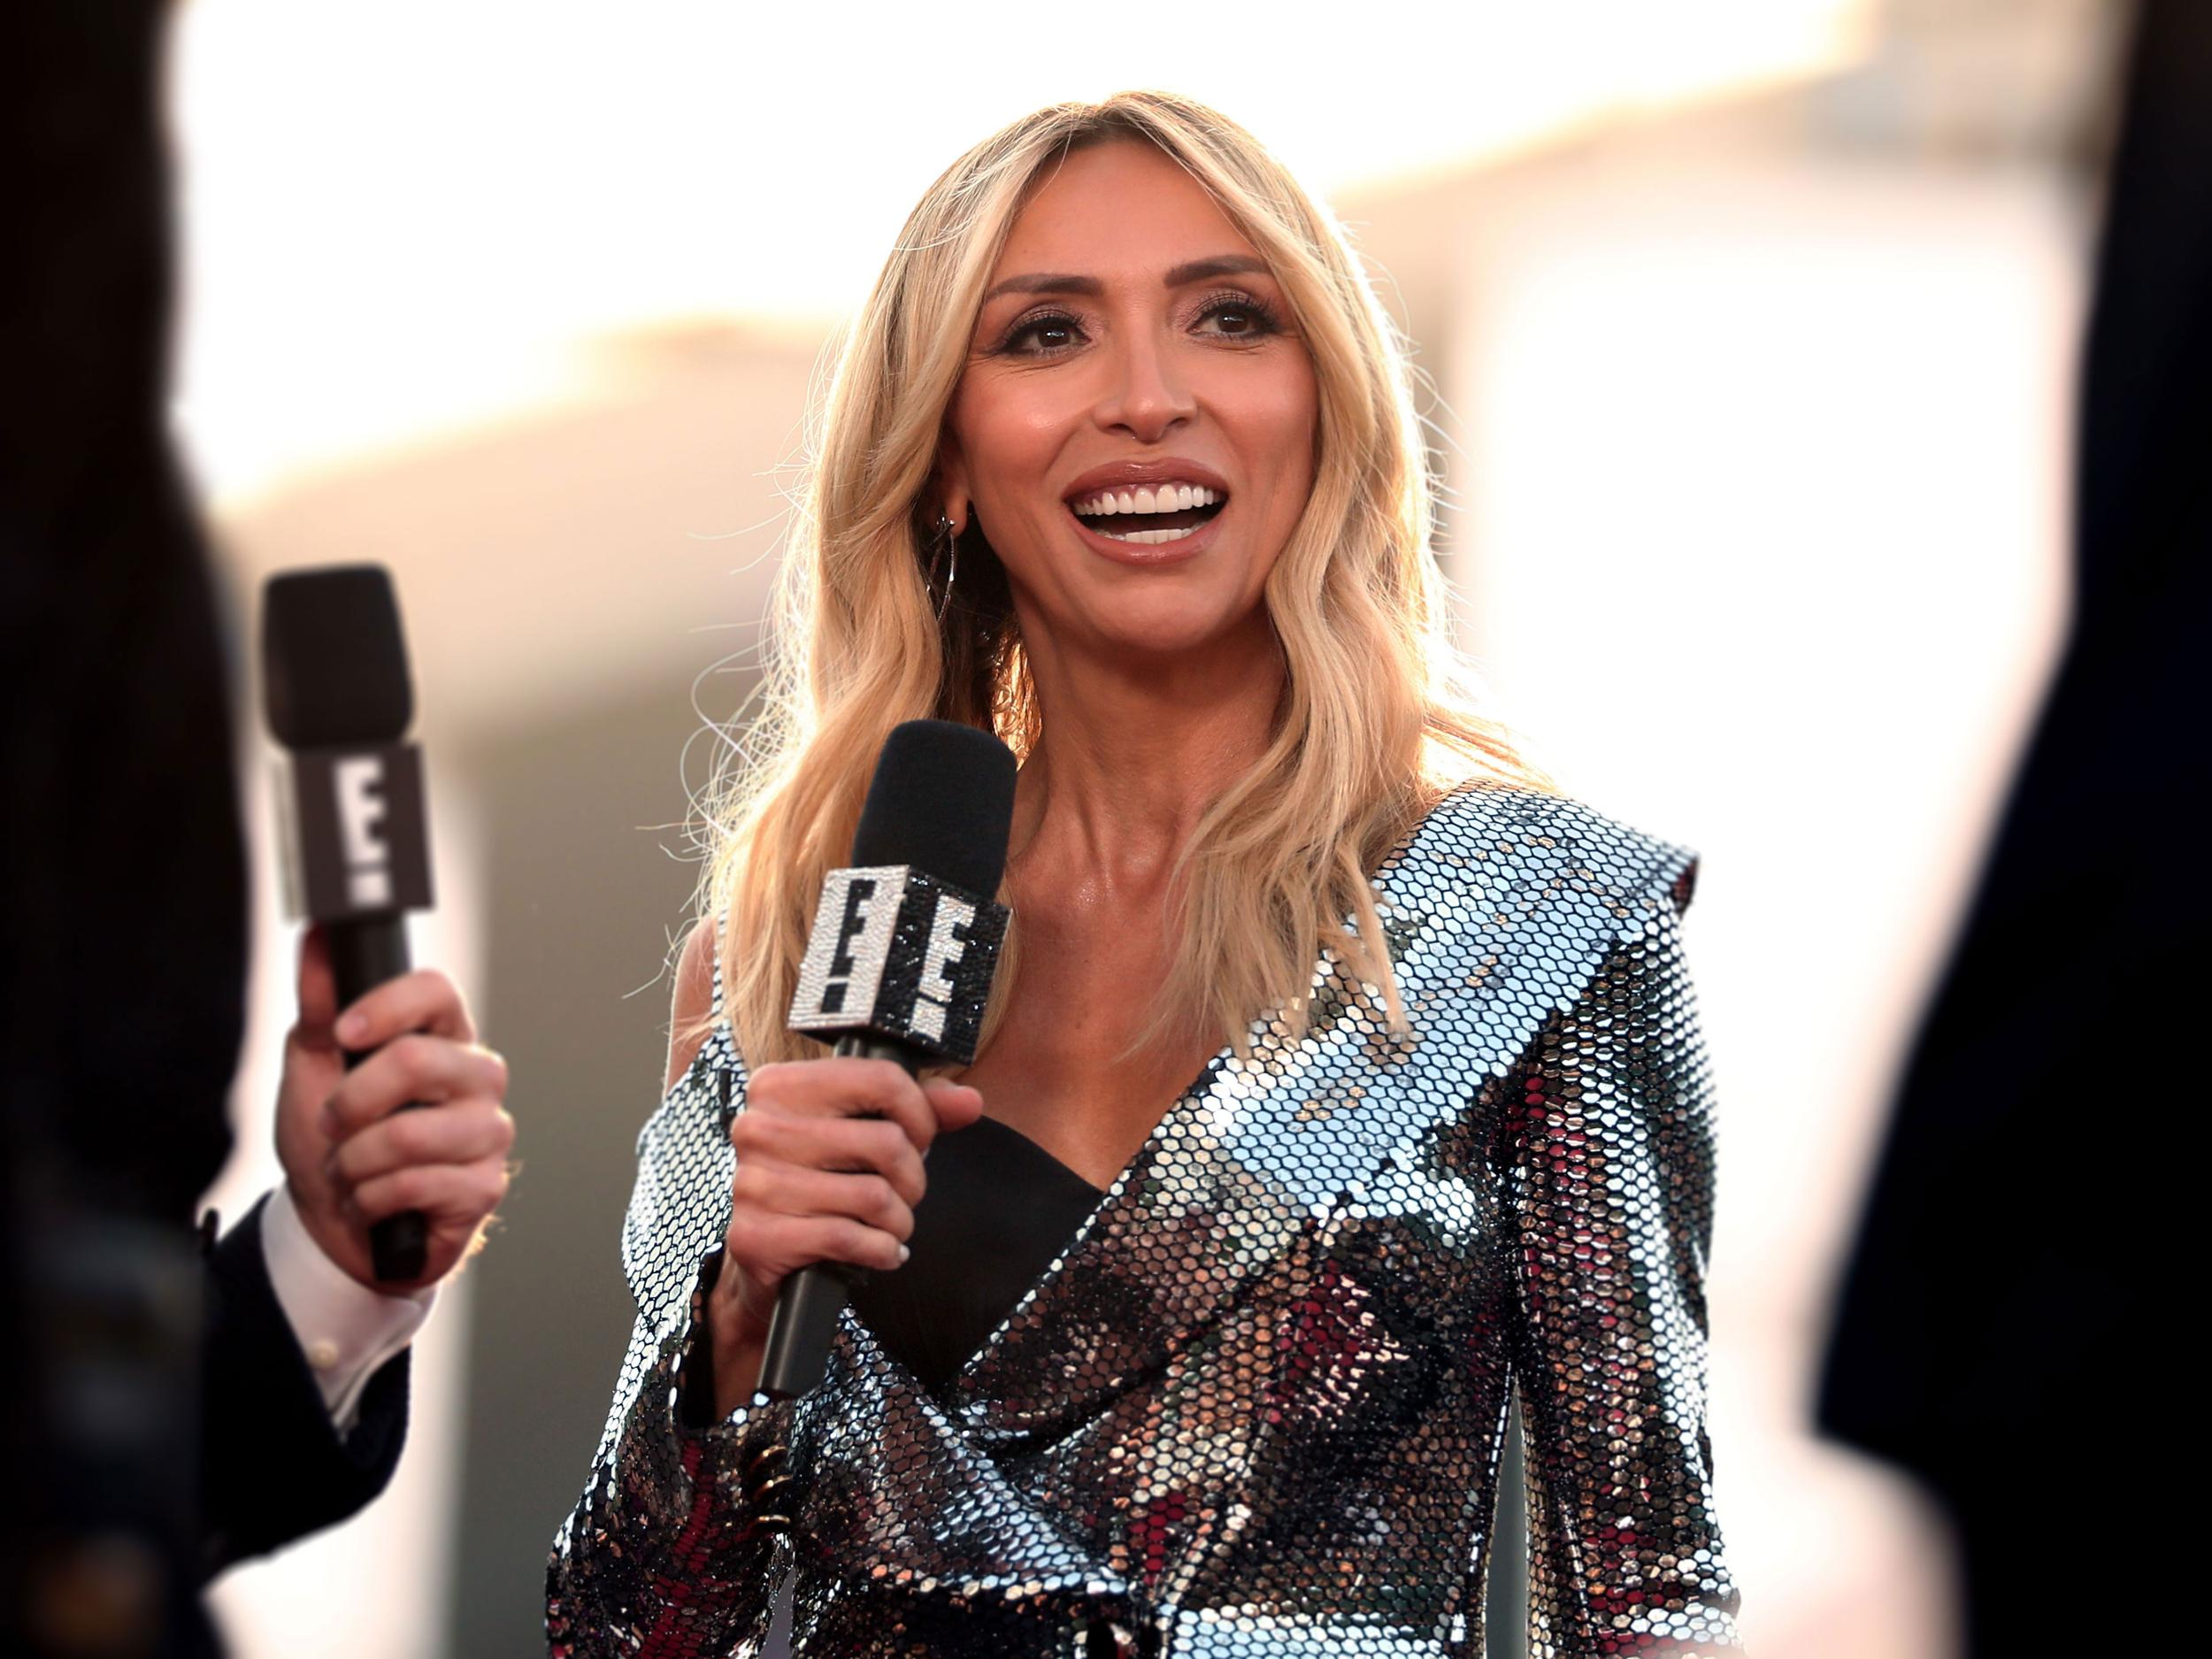 Giuliana Rancic on What it's Really Like to Work a Red Carpet